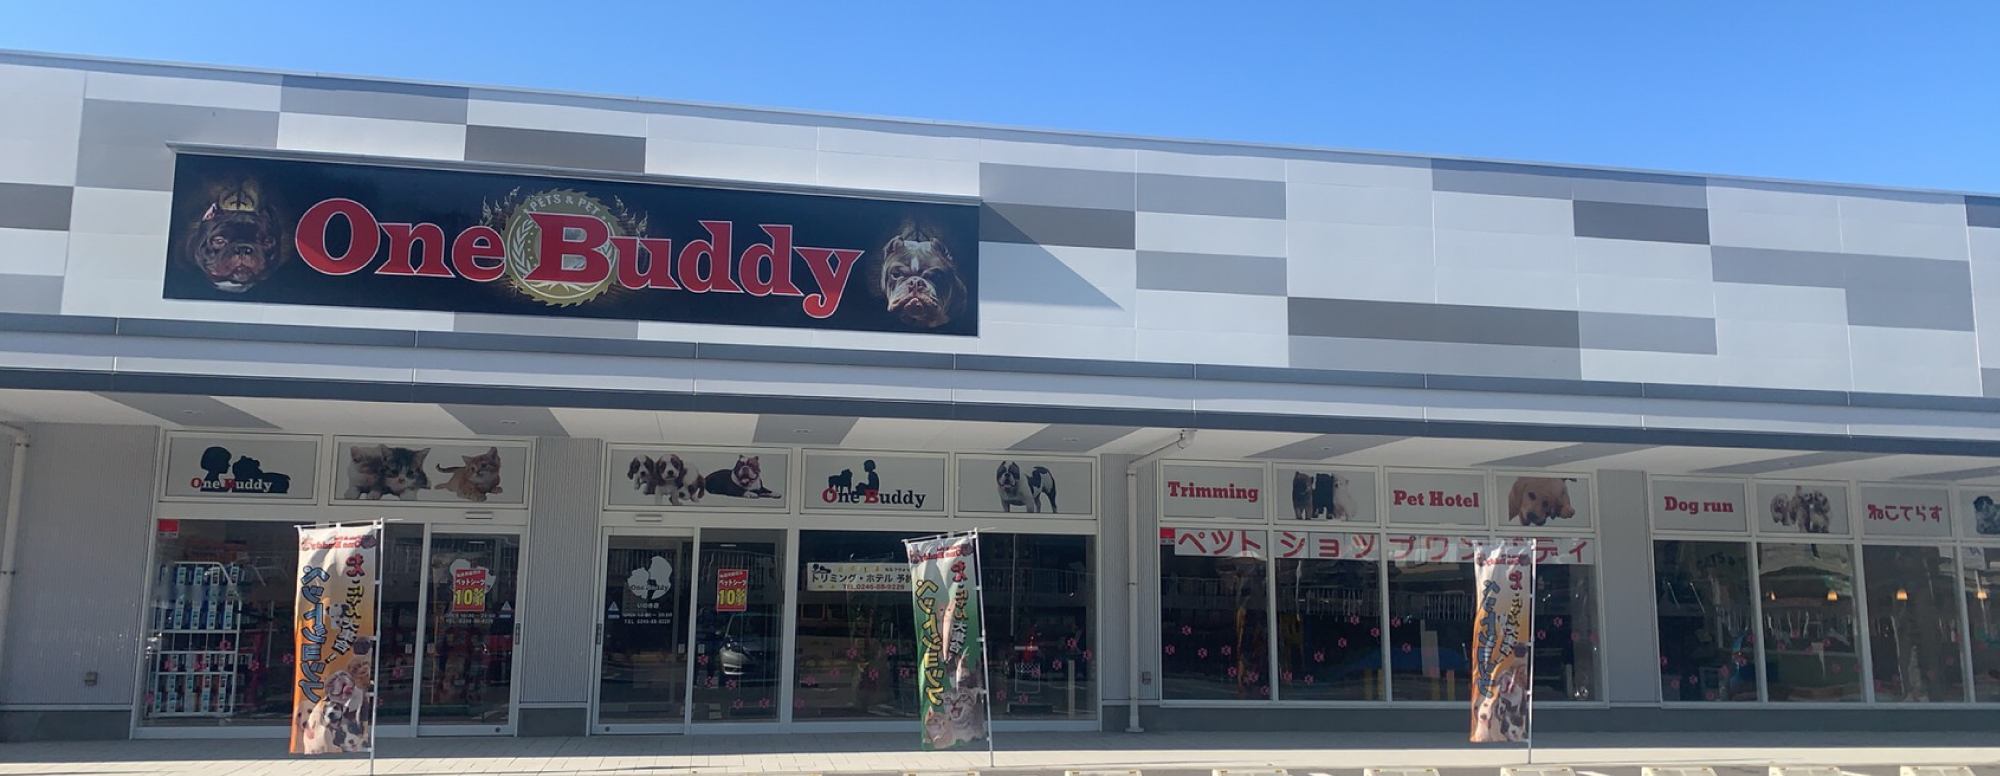 OneBuddyいわき店